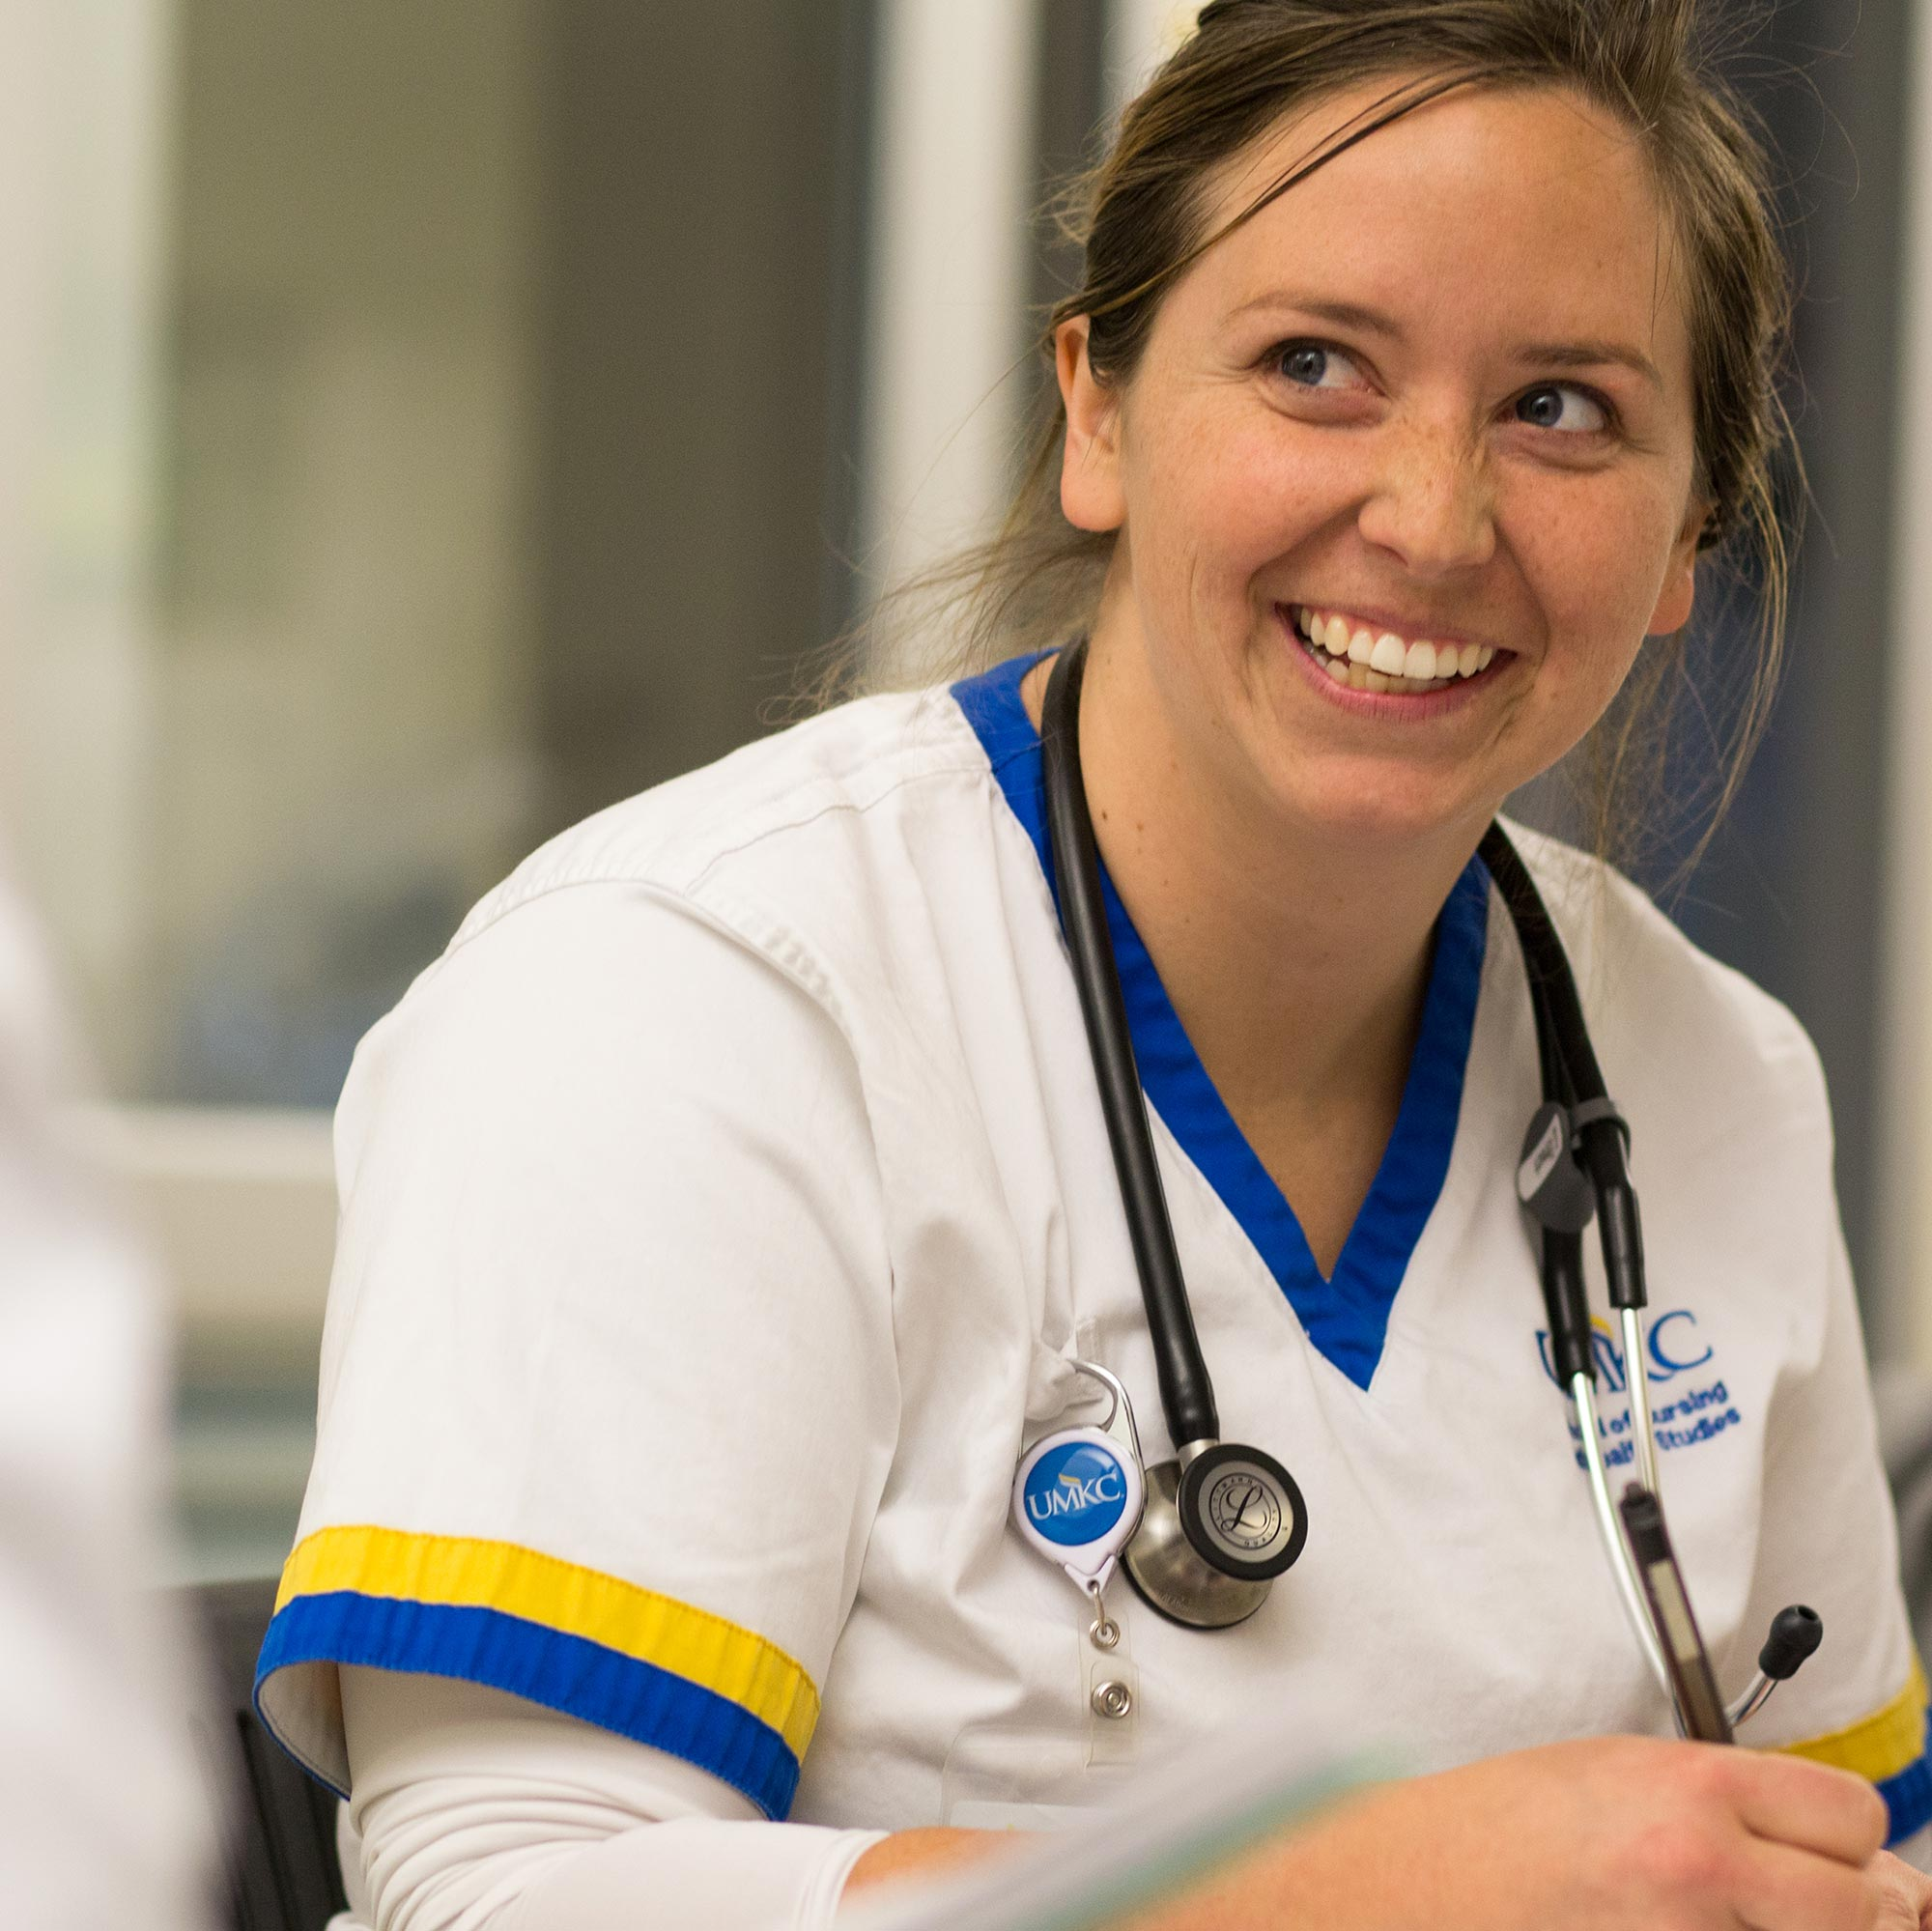 Nursing student writes notes on a chart and smiles while participating in a simulation event